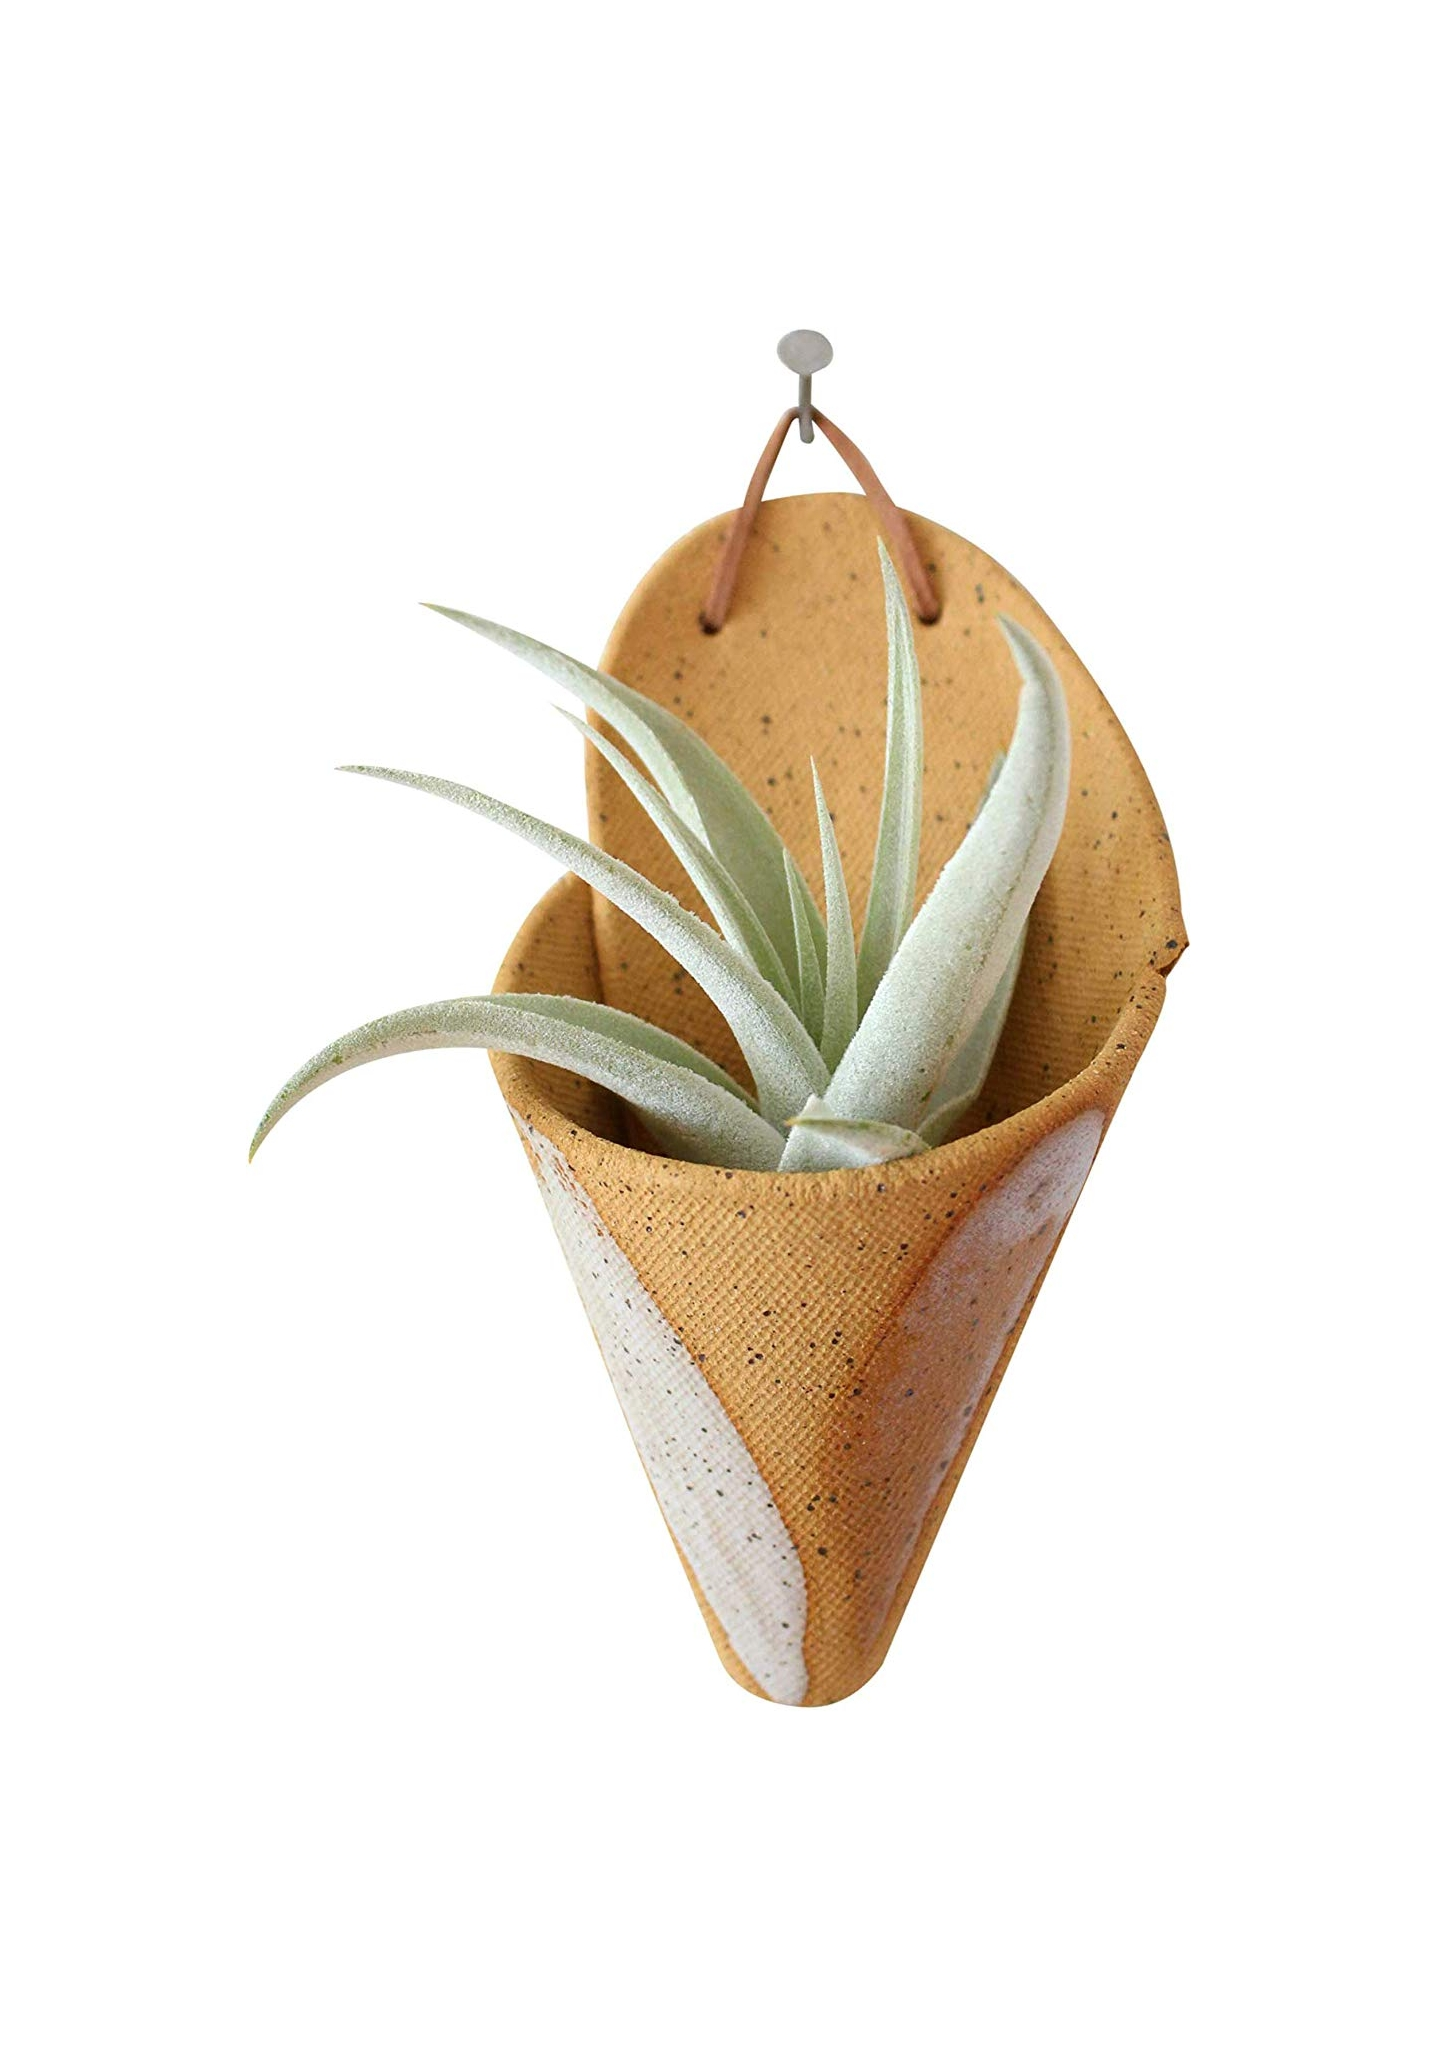 RETRO CERAMIC WALL MOUNTS & AIR PLANTS - GIVE THE PERFECT GIFT